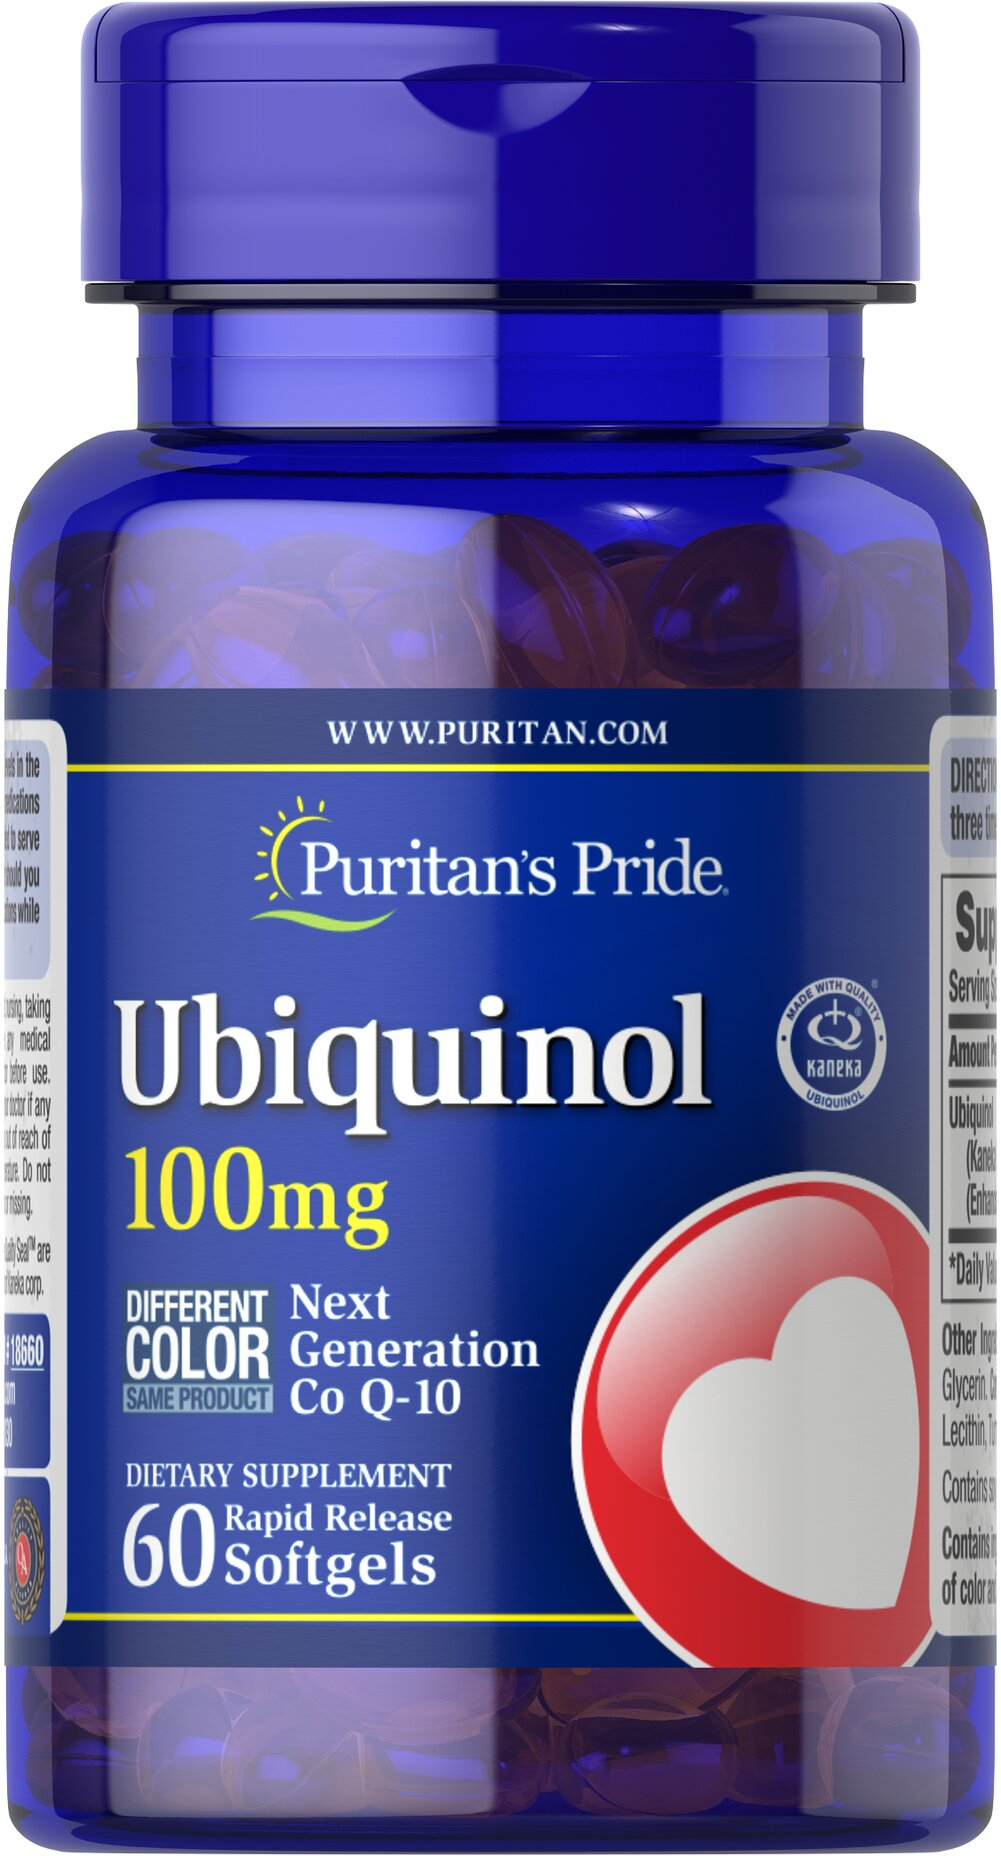 Ubiquinol 100 mg Thumbnail Alternate Bottle View